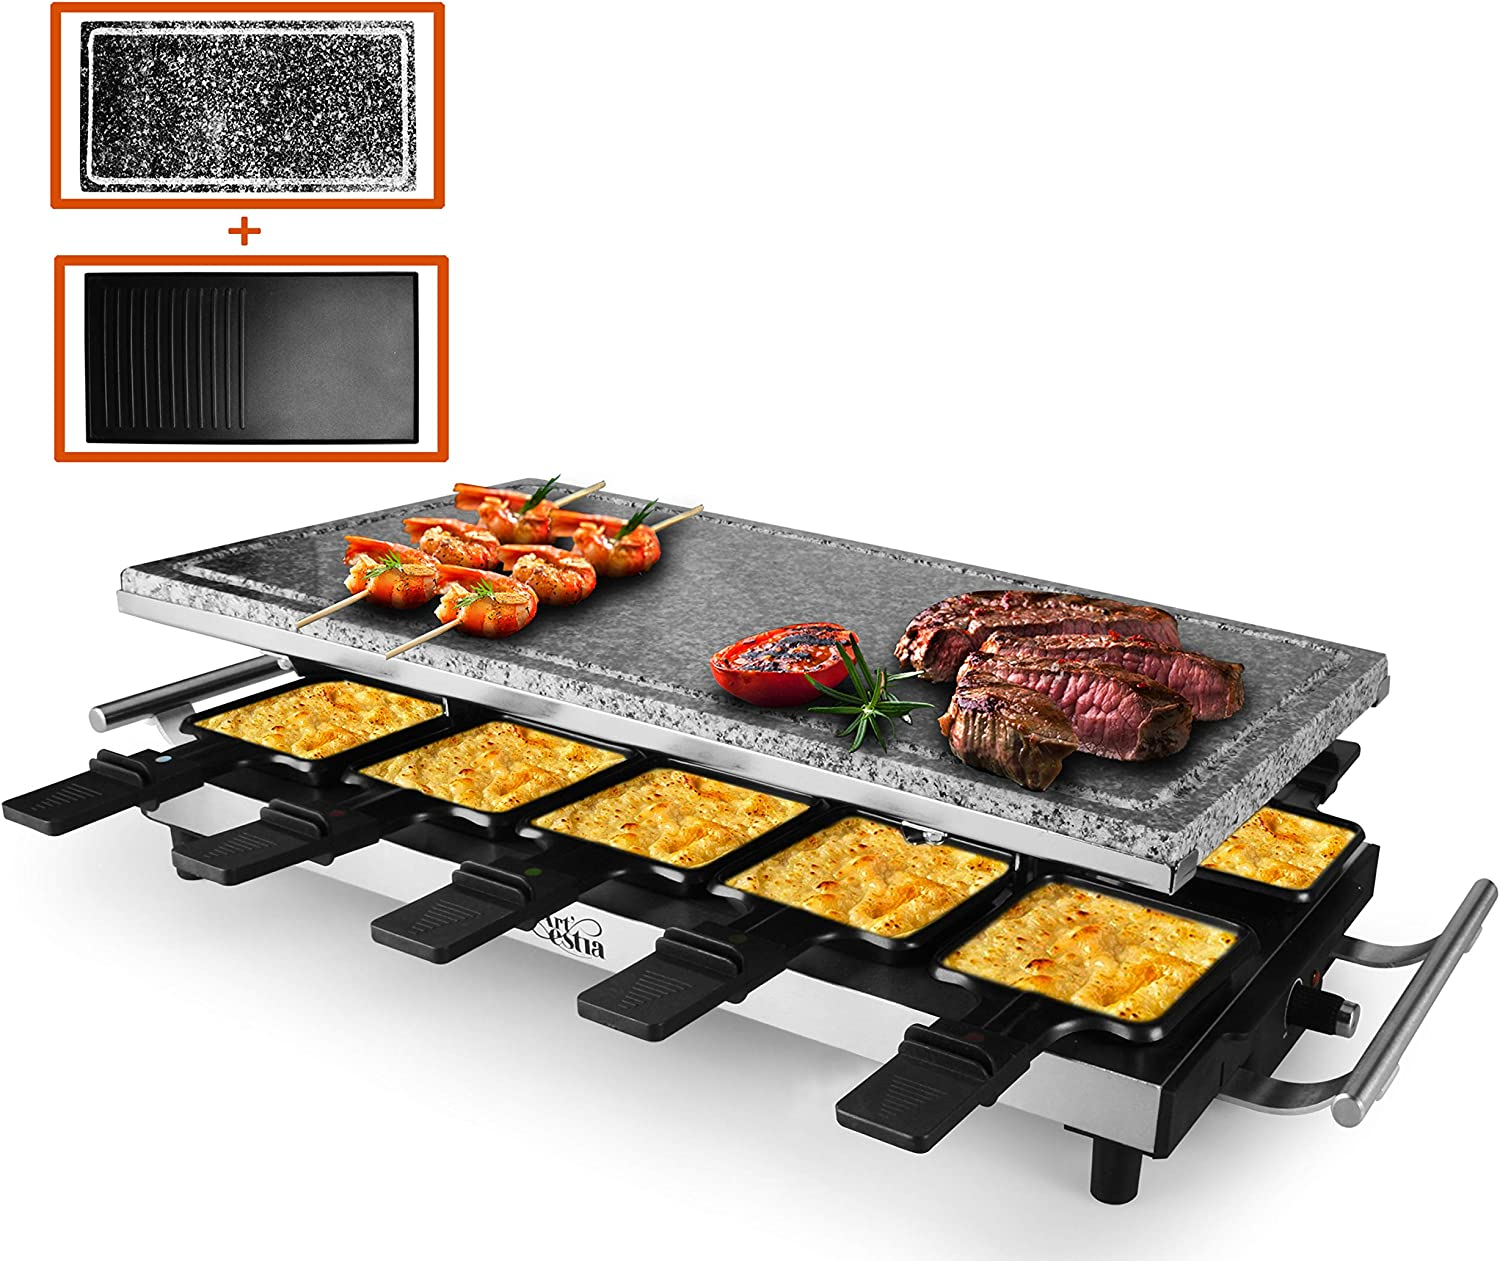 Artestia 10 Person Large Stainless Steel Electric Raclette Grill with Two Full Size Top Plates, High Power 1500W Full Size Stone and Non-Stick Reversible Aluminum Plate for 10 persons